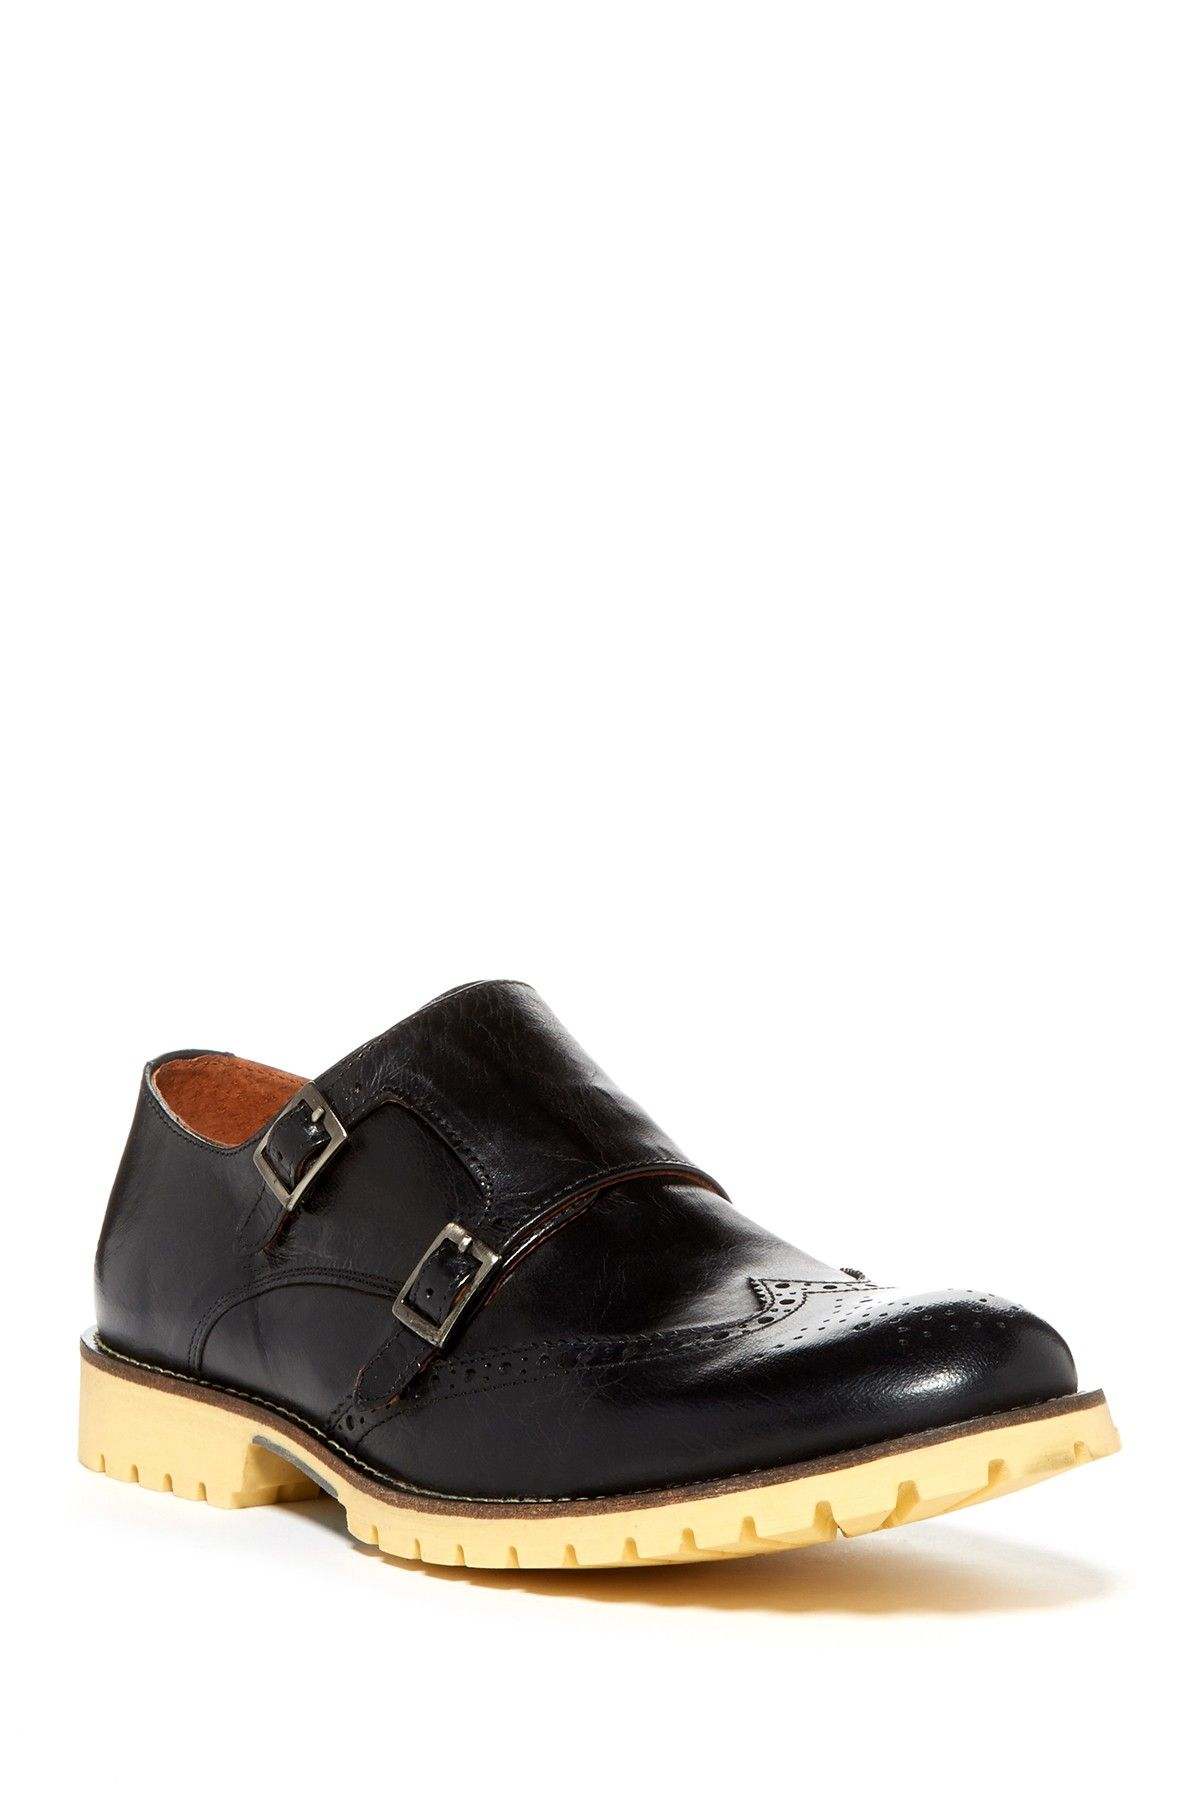 74d344f816 Kenneth Cole Reaction Pop Song Monk Strap Wingtip Loafer on HauteLook